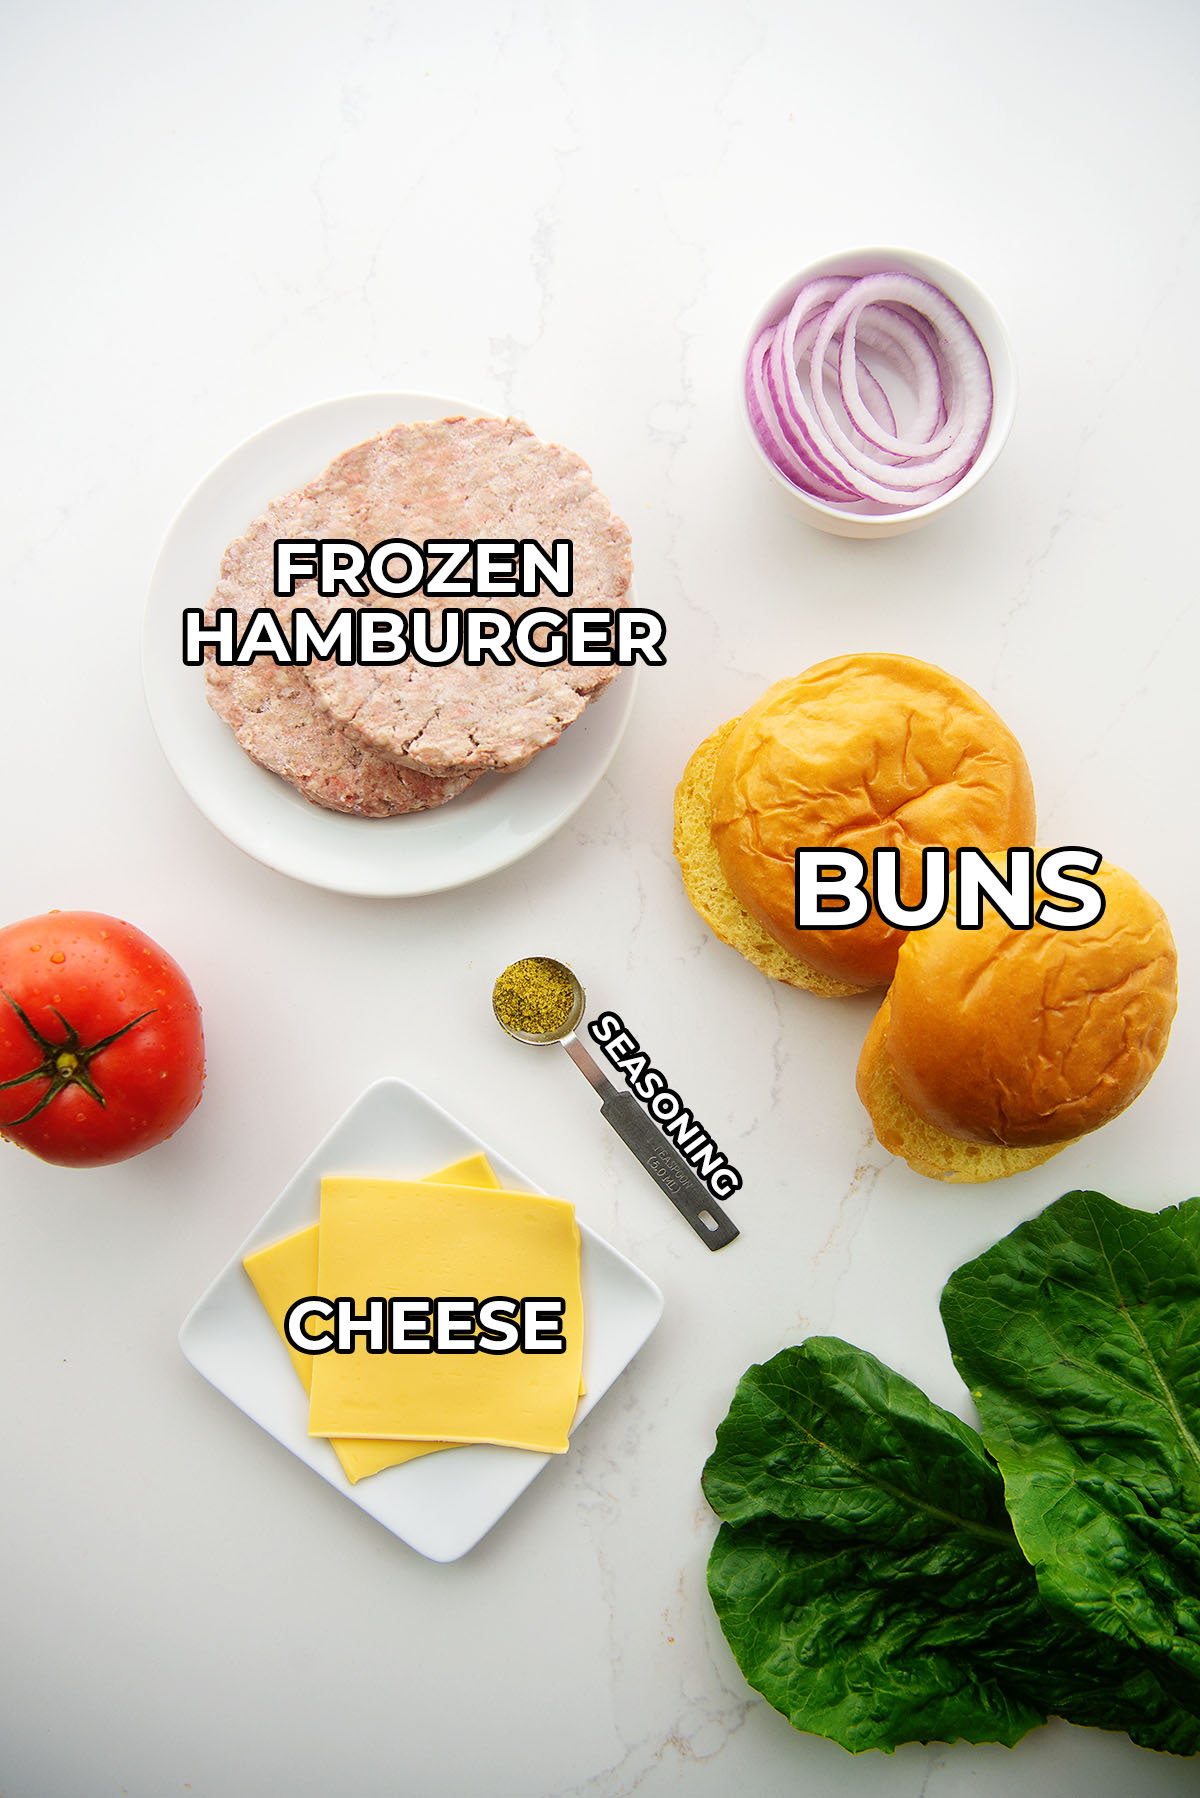 Cheeseburger ingredients spread out on a countertop.